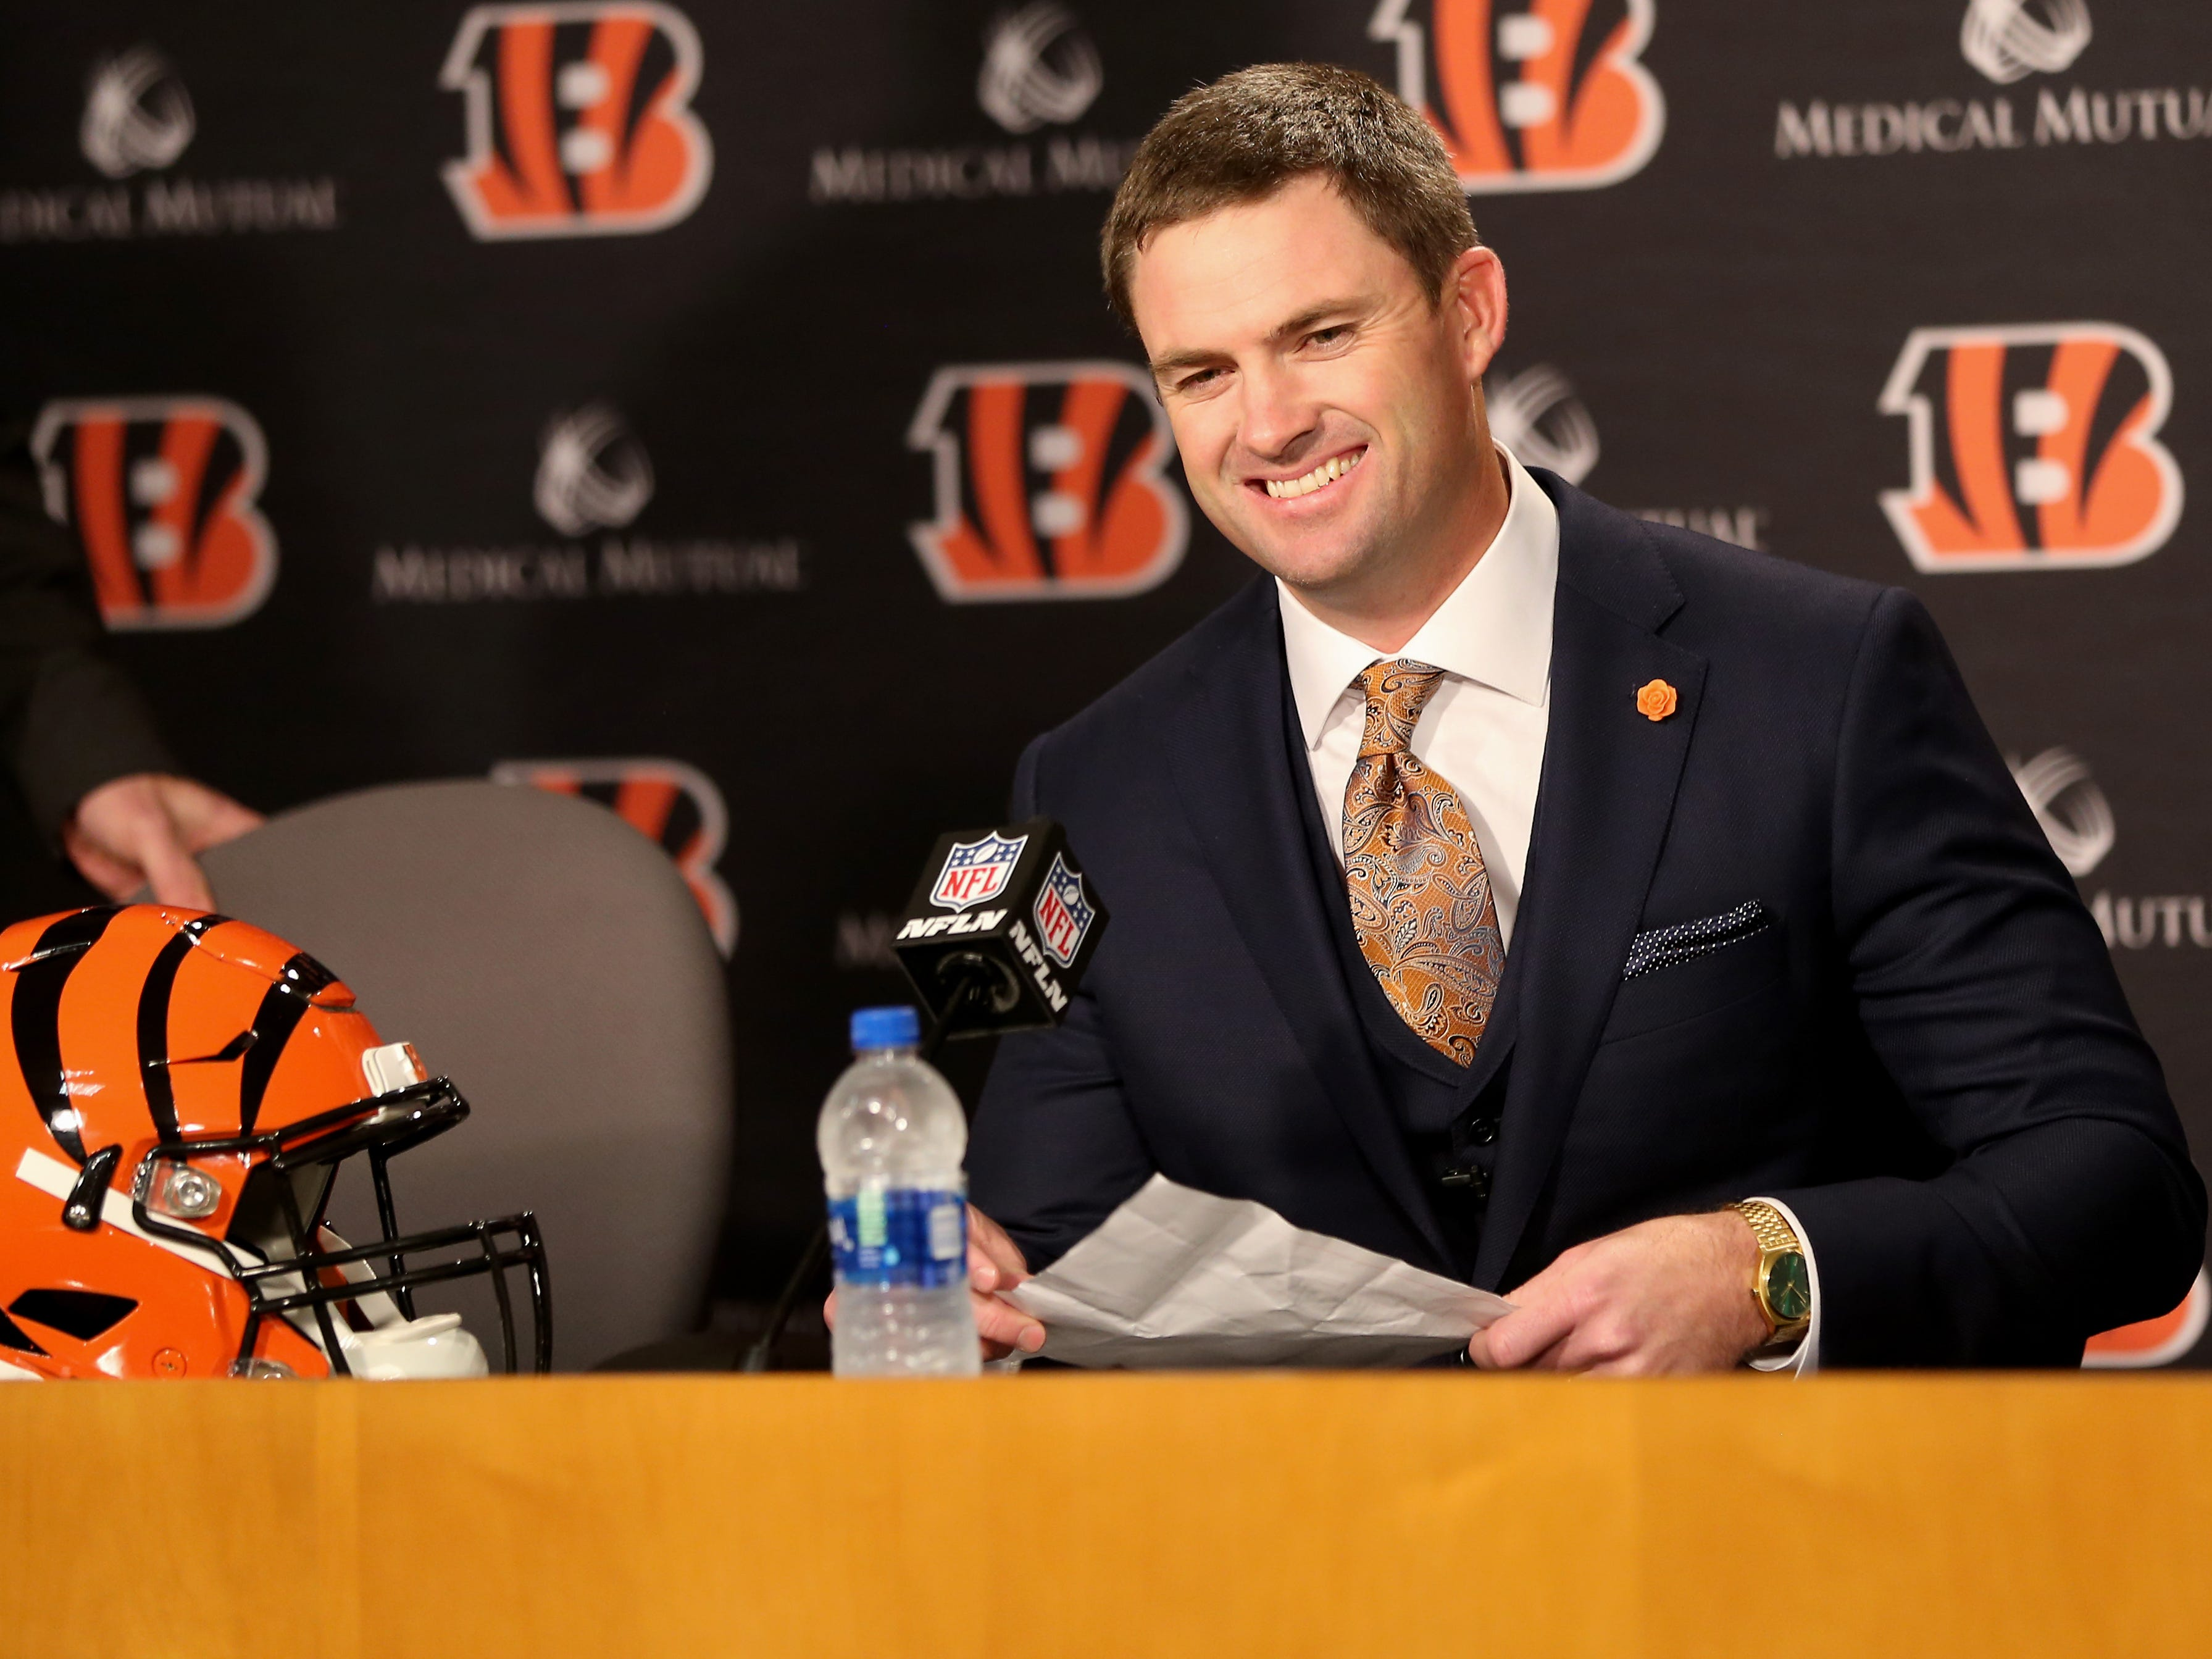 Zac Taylor was named the head coach of the Cincinnati Bengals, Tuesday, Feb. 5. He follows in the footsteps of nine other coaches who have lead the team. Here's a look at their records, listed by their total number of wins.